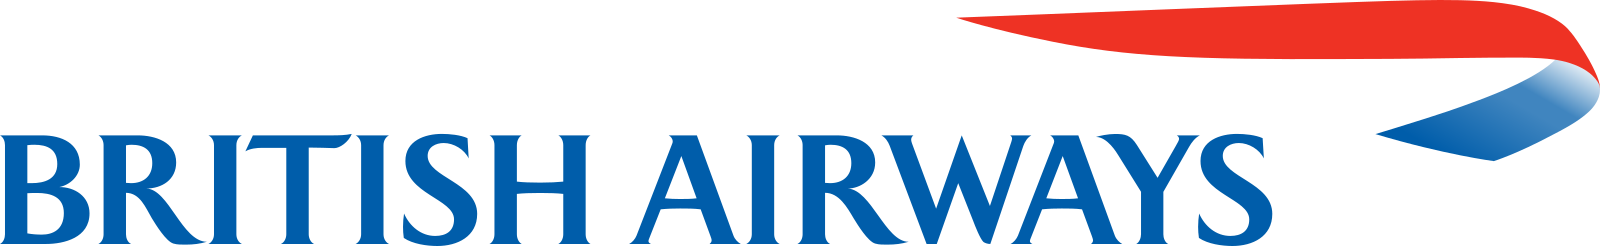 british airways logo 2 - British Airways Logo